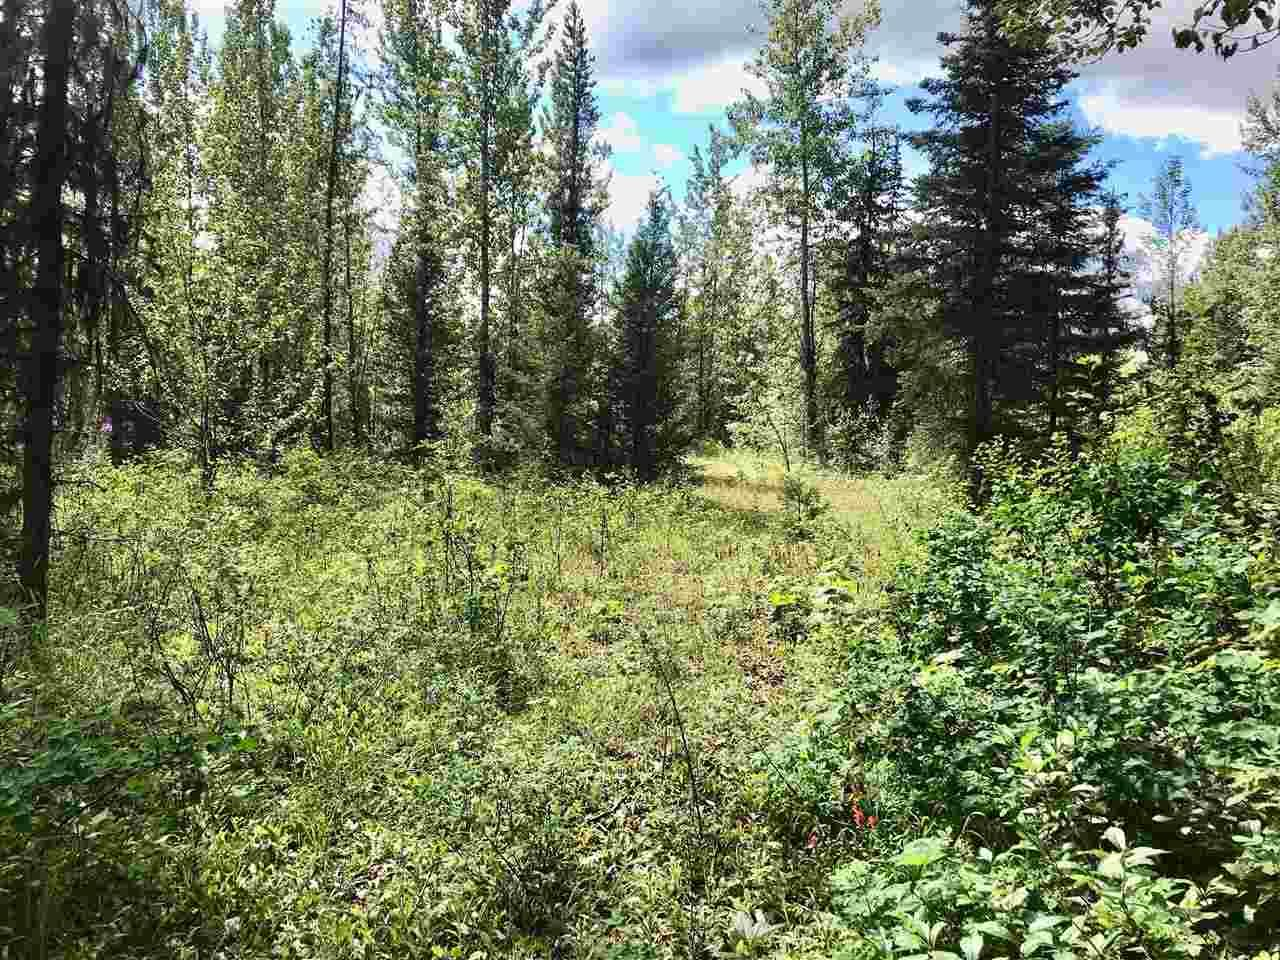 Main Photo: LOT 10 ISLAND PARK Drive in Prince George: Miworth Land for sale (PG Rural West (Zone 77))  : MLS®# R2388123